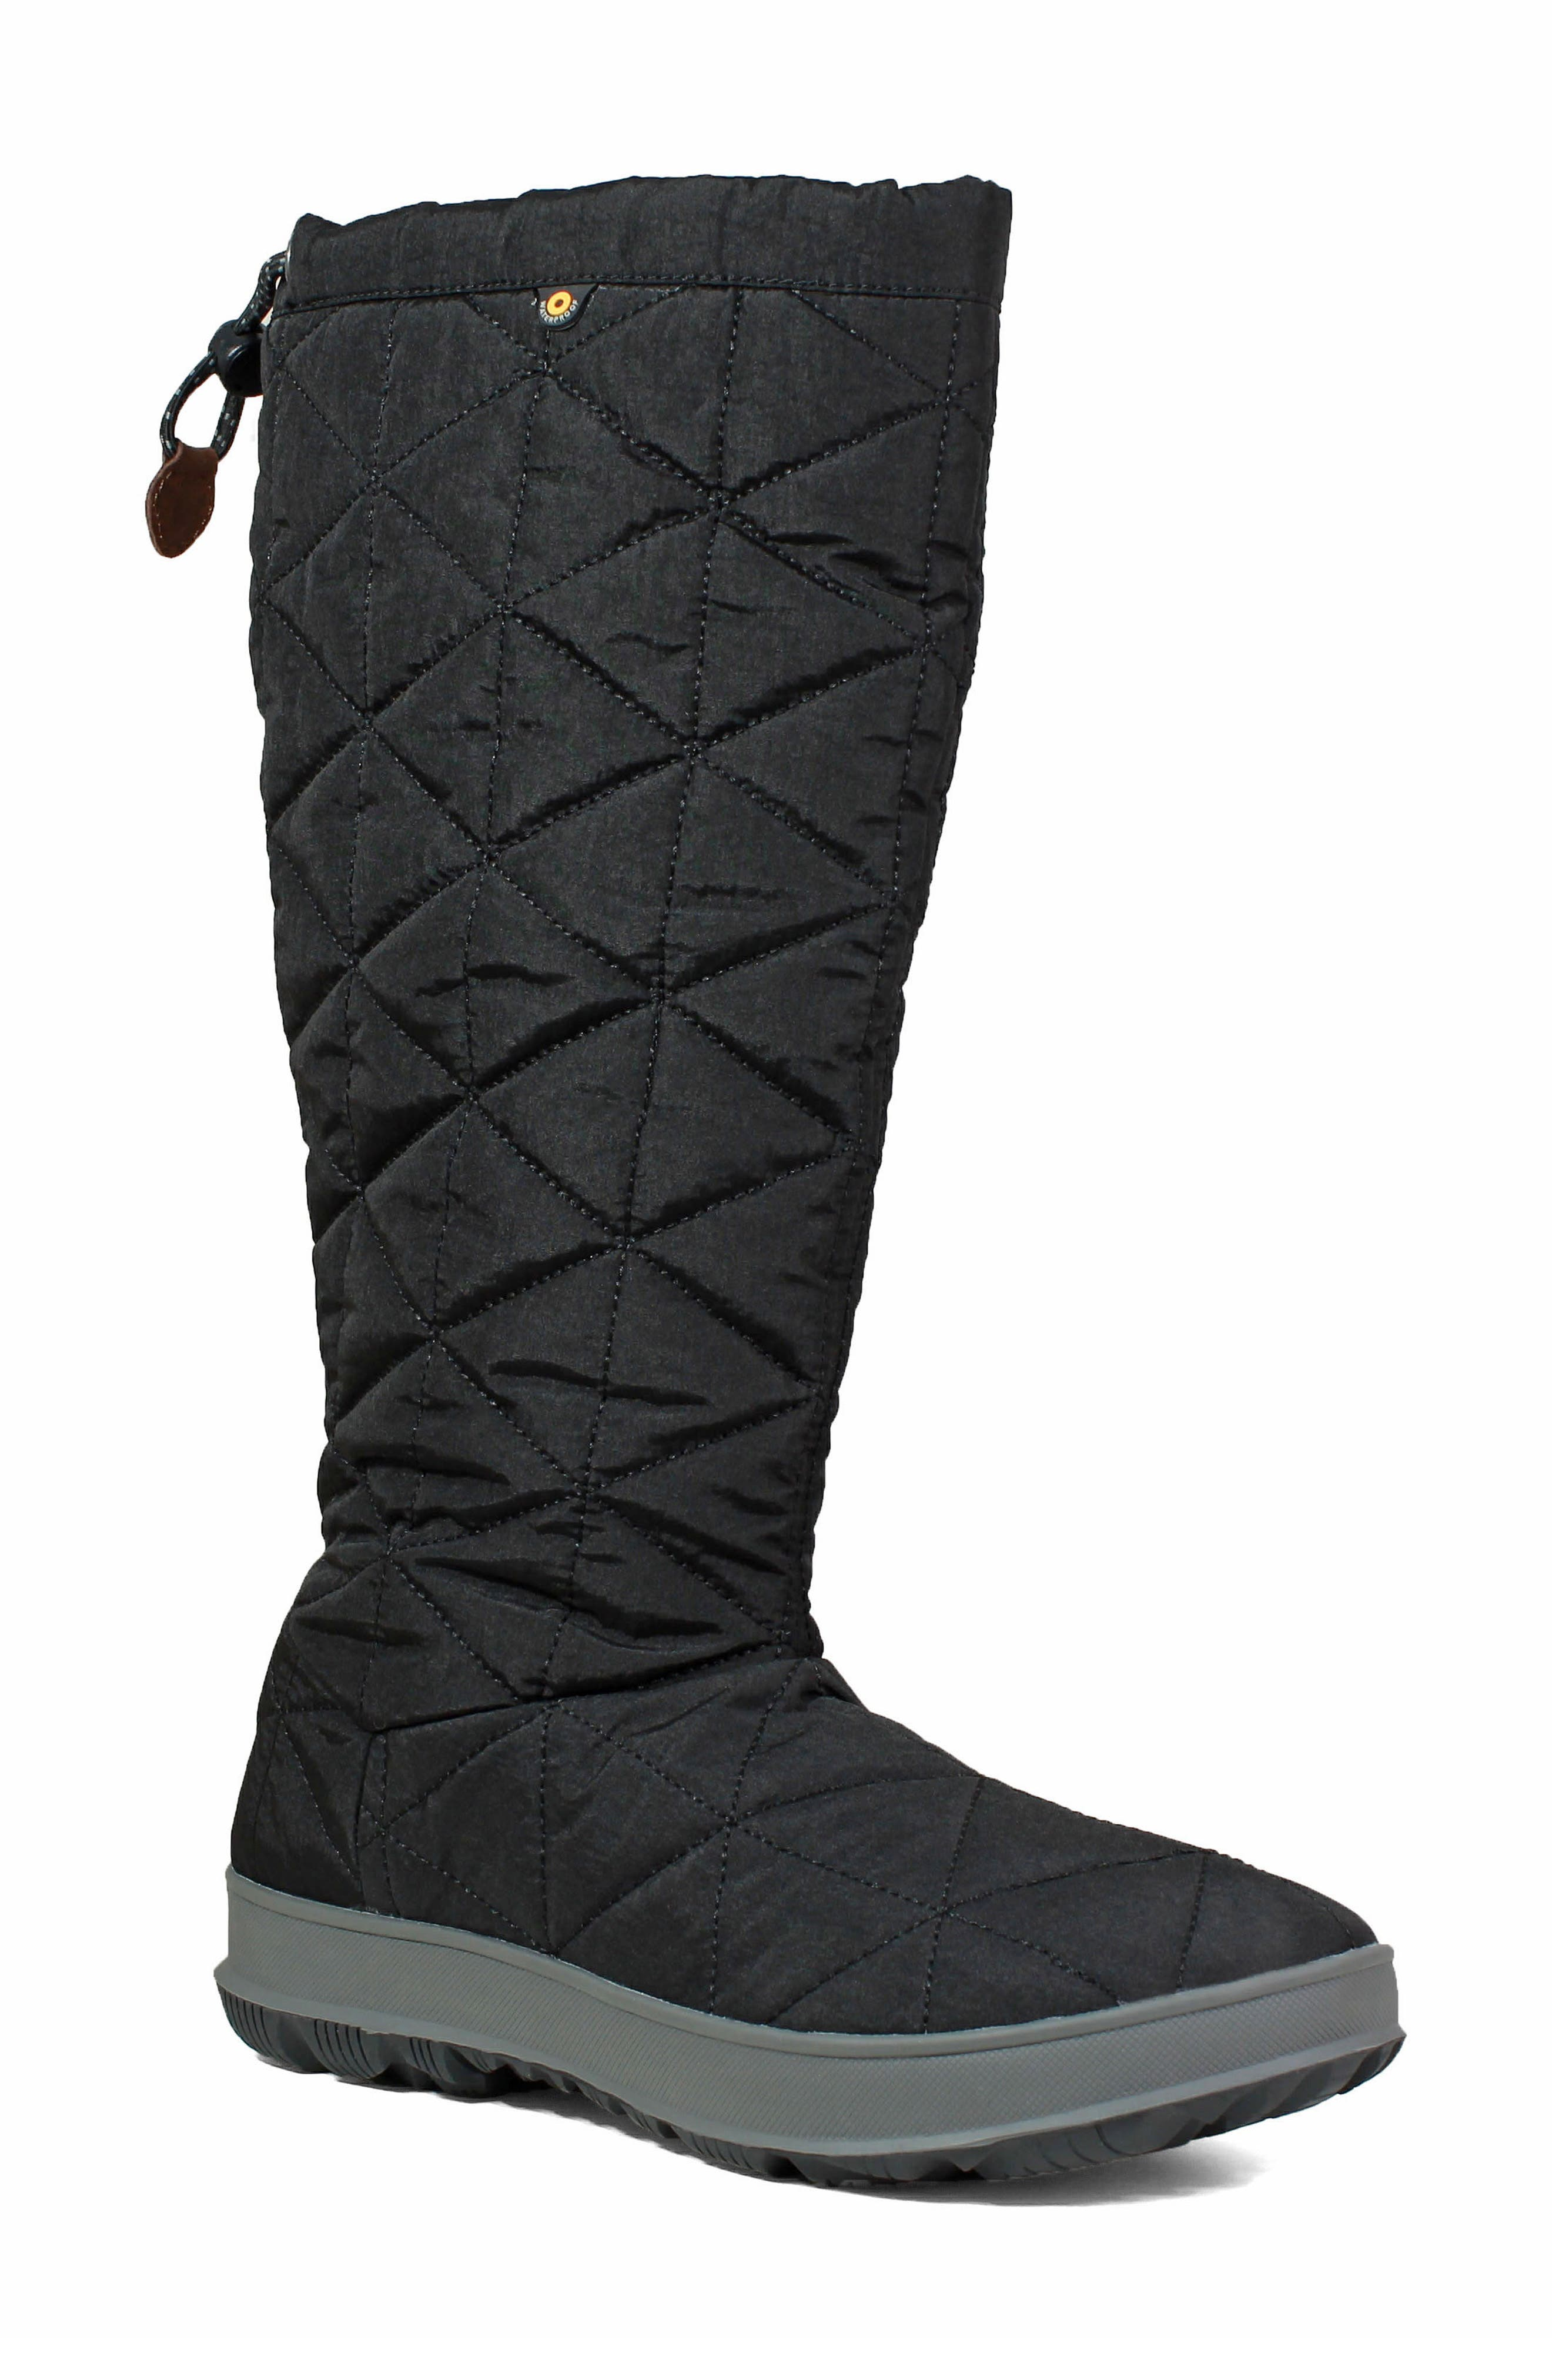 Bogs Snowday Tall Waterproof Quilted Snow Boot, Black